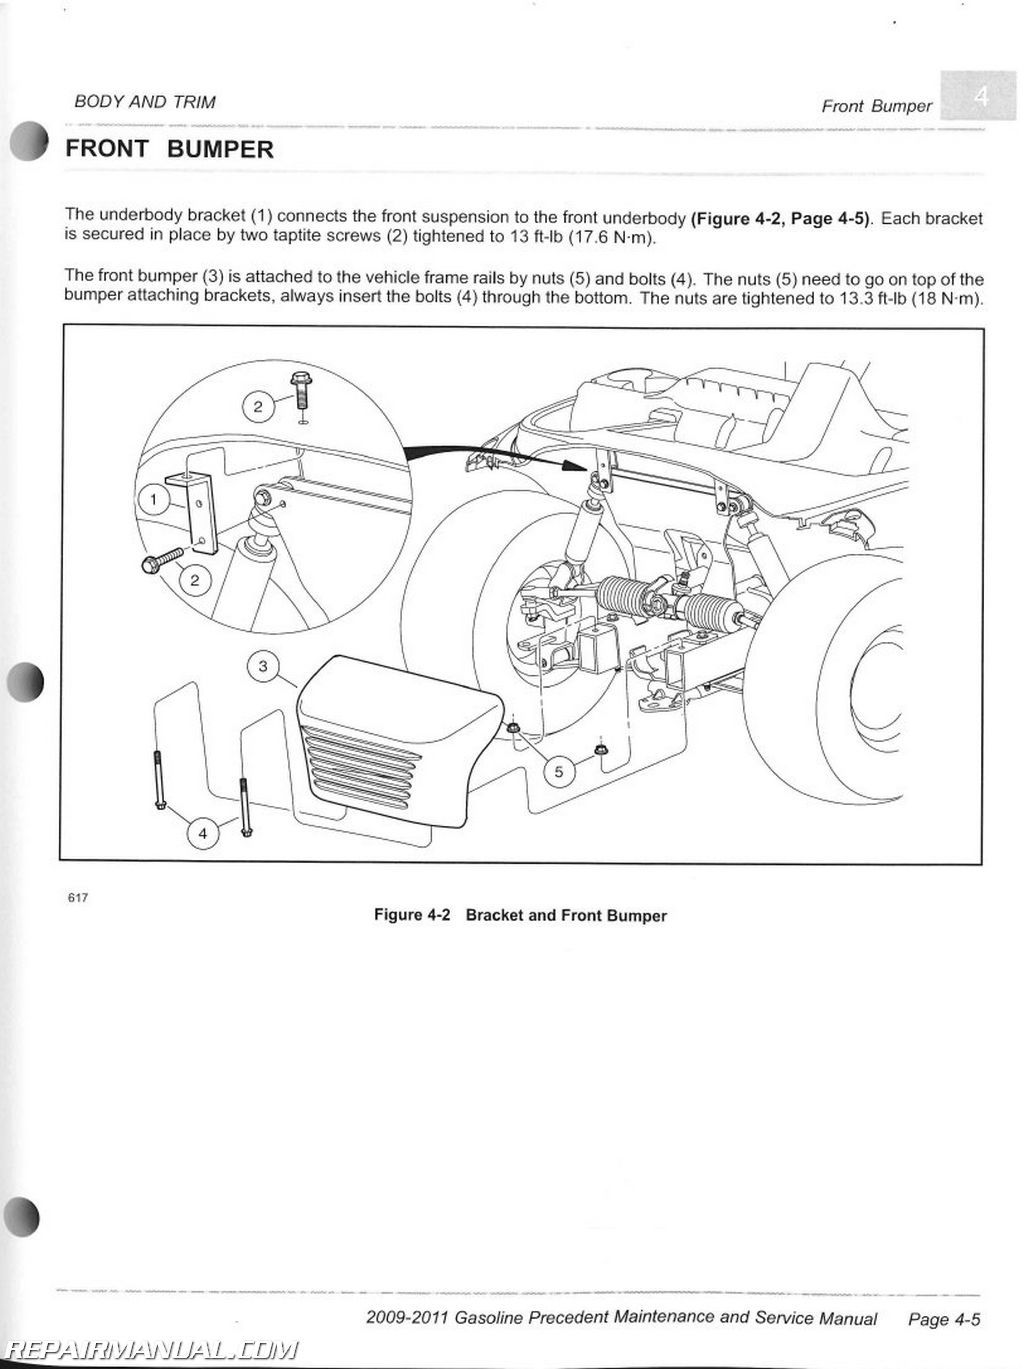 2003 Gas Club Car Wiring Diagram from static-resources.imageservice.cloud